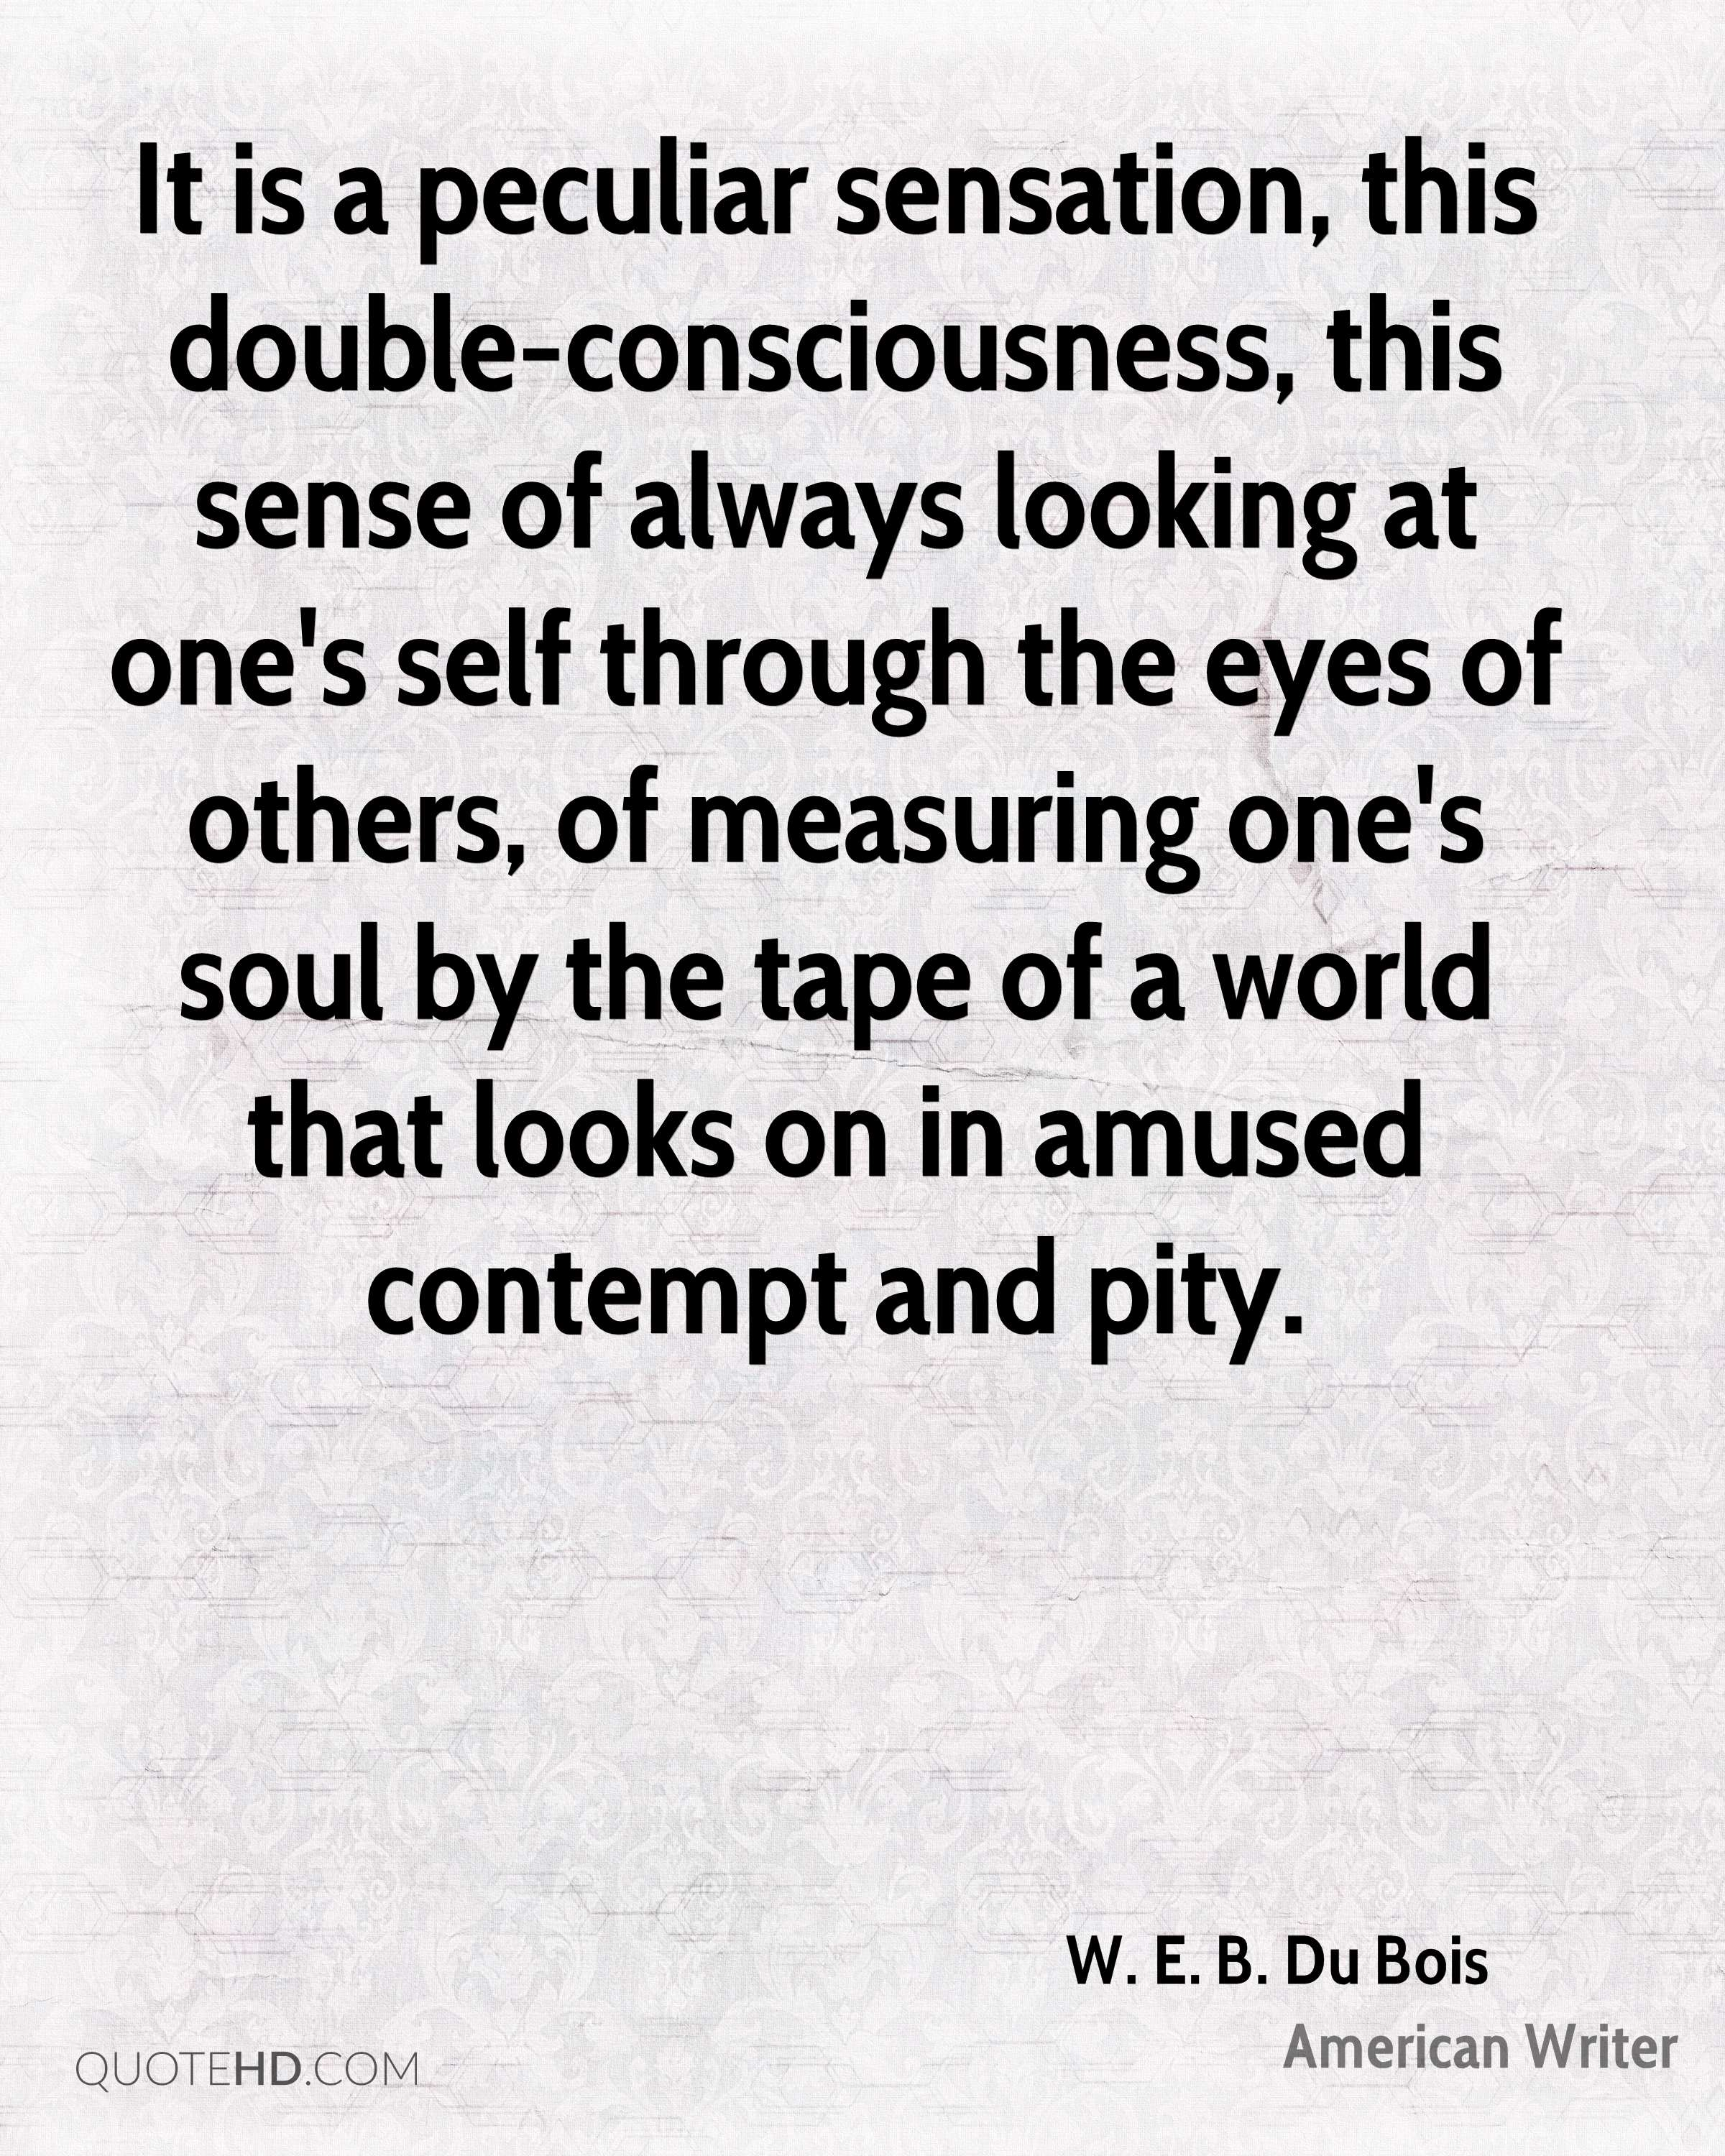 It is a peculiar sensation, this double-consciousness, this sense of always looking at one's self through the eyes of others, of measuring one's soul by the tape of a world that looks on in amused contempt and pity.